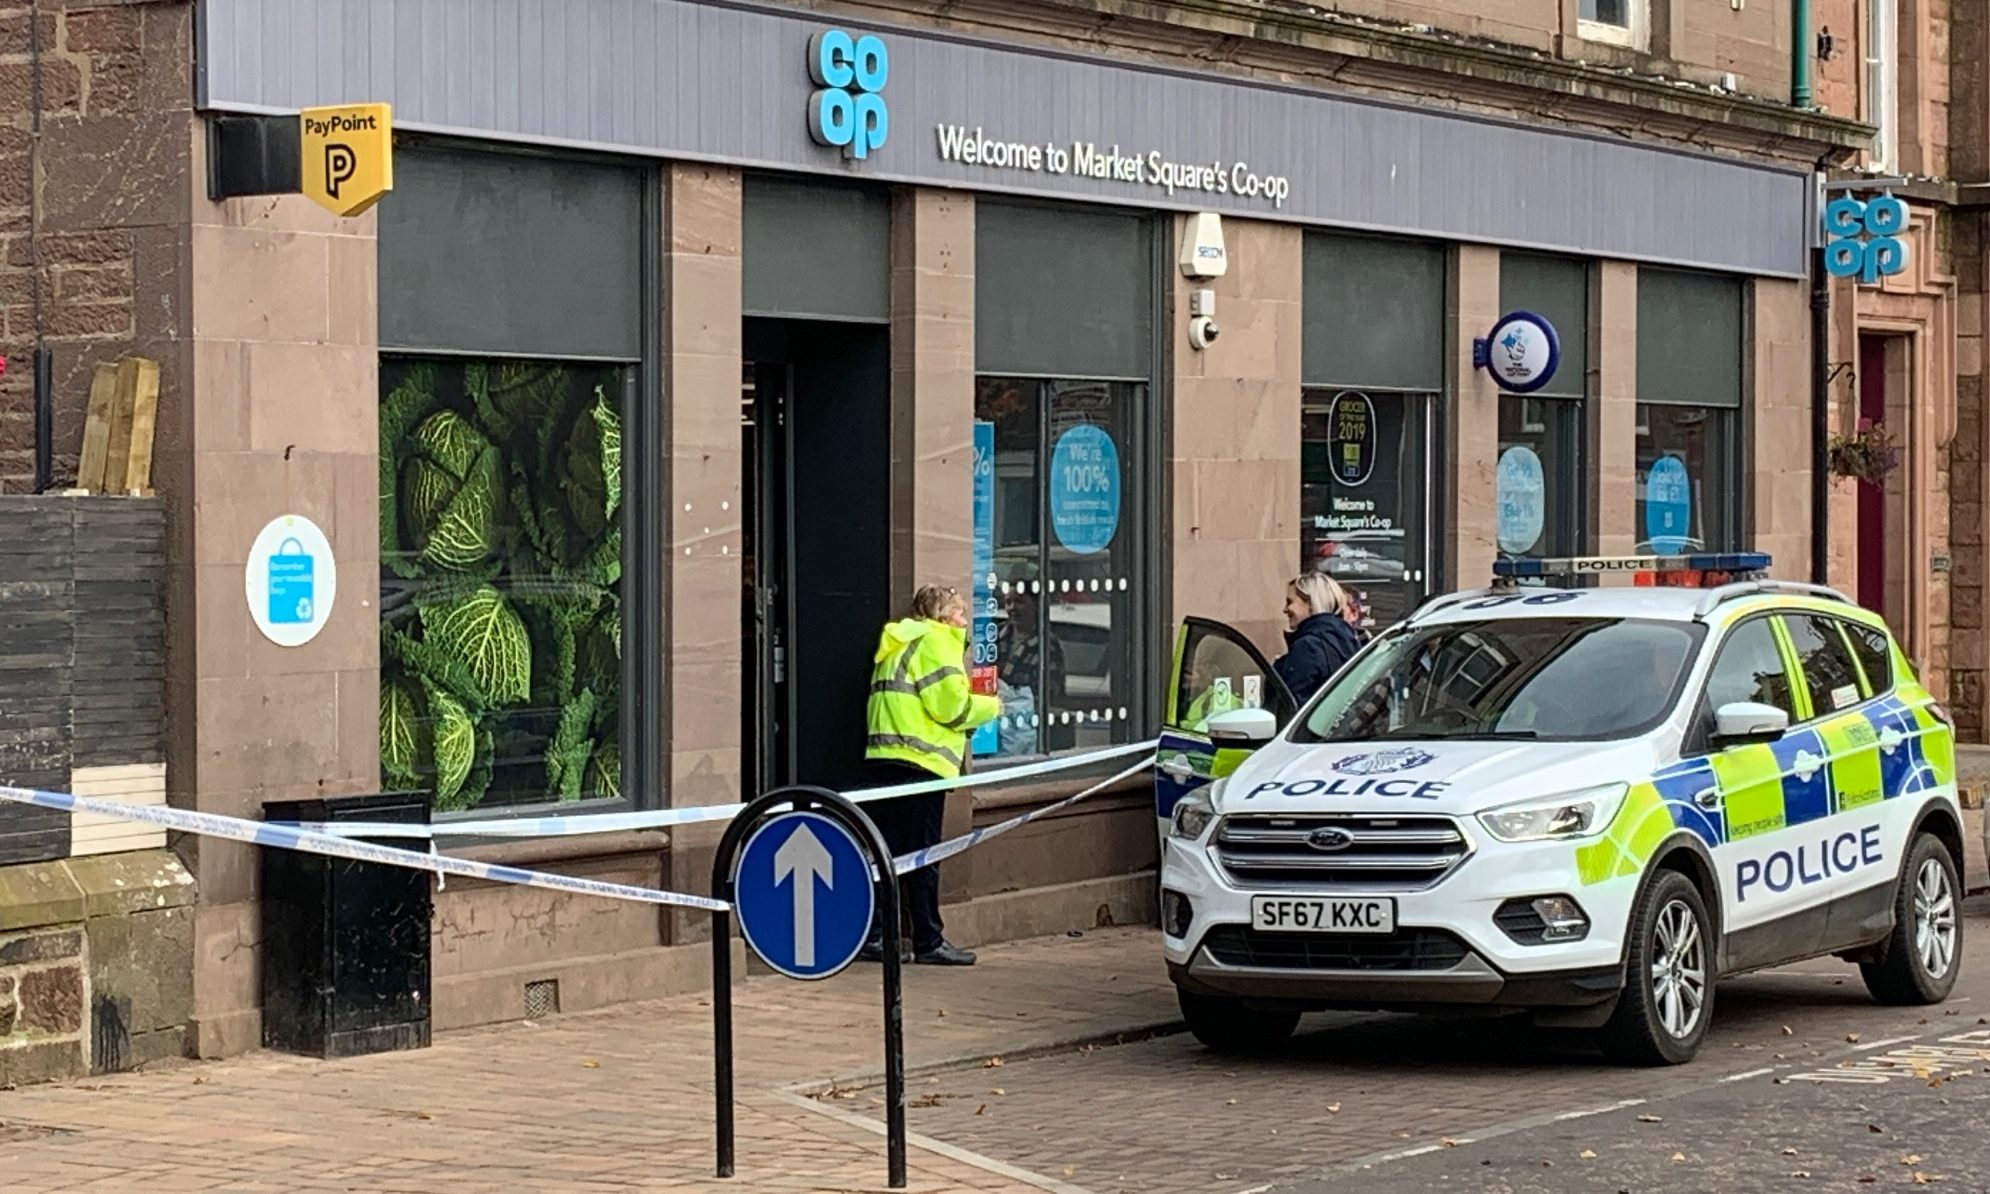 Police at the Alyth Co-op.